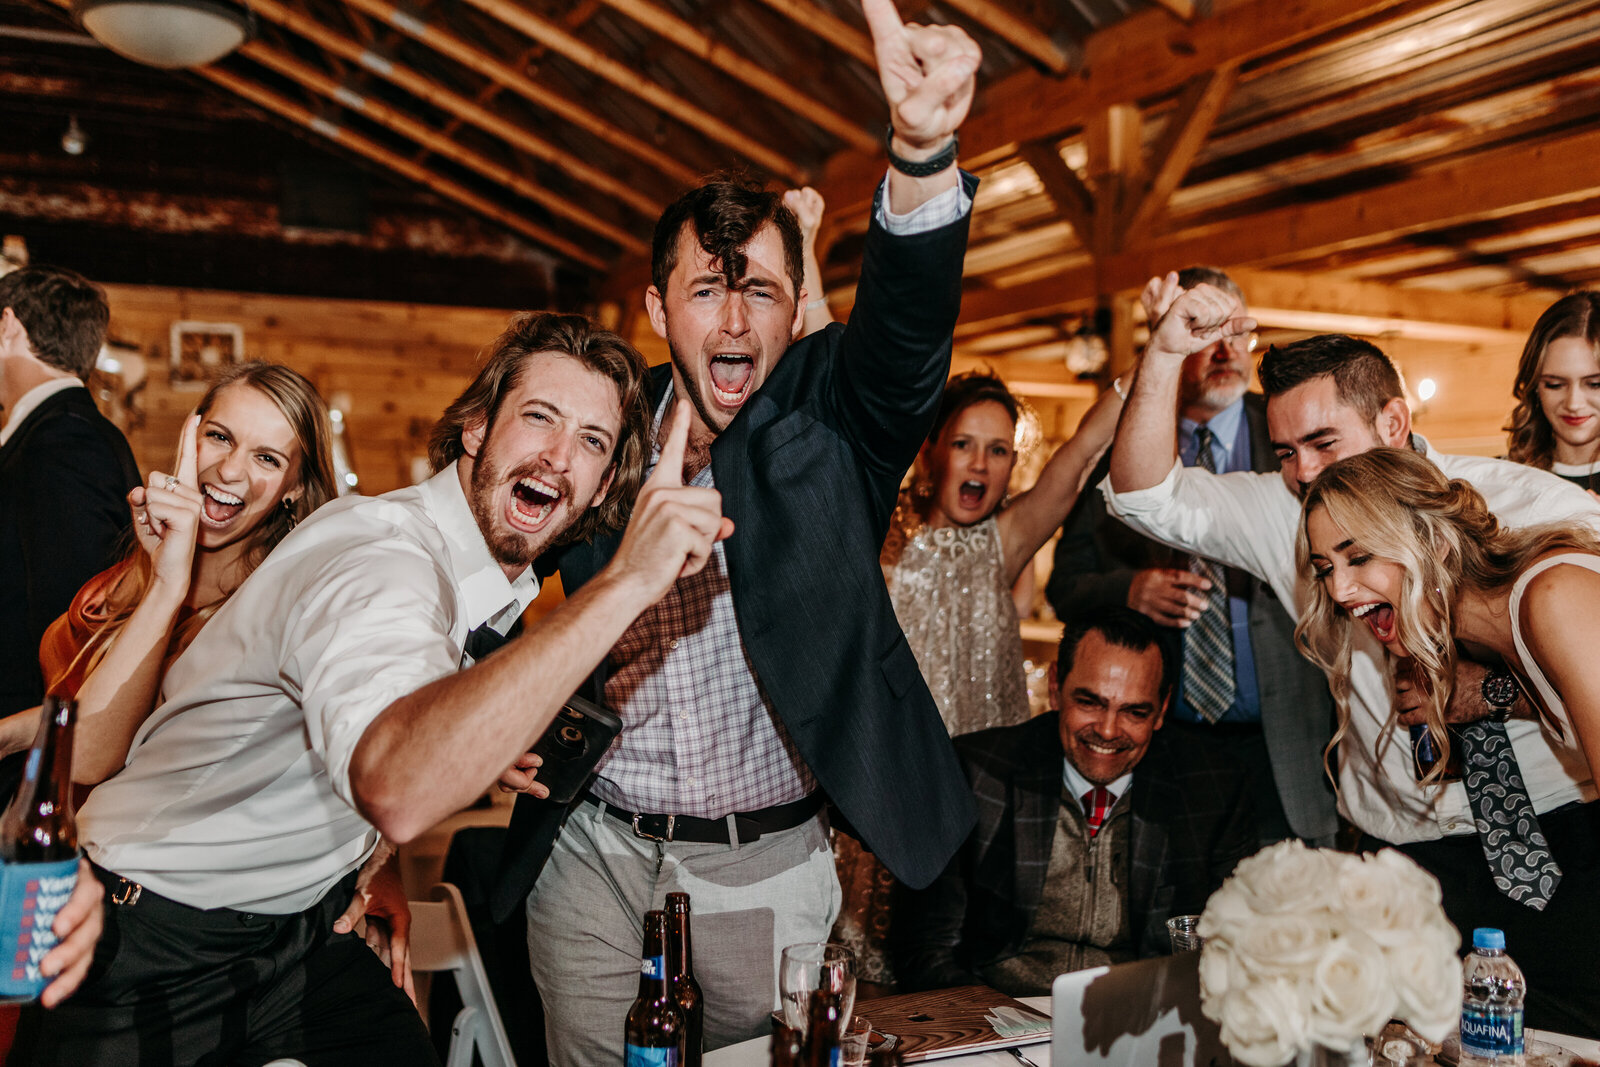 J.Michelle Photography photographs guests dance at a reception  during a vintage oaks farm wedding in Athens, Ga